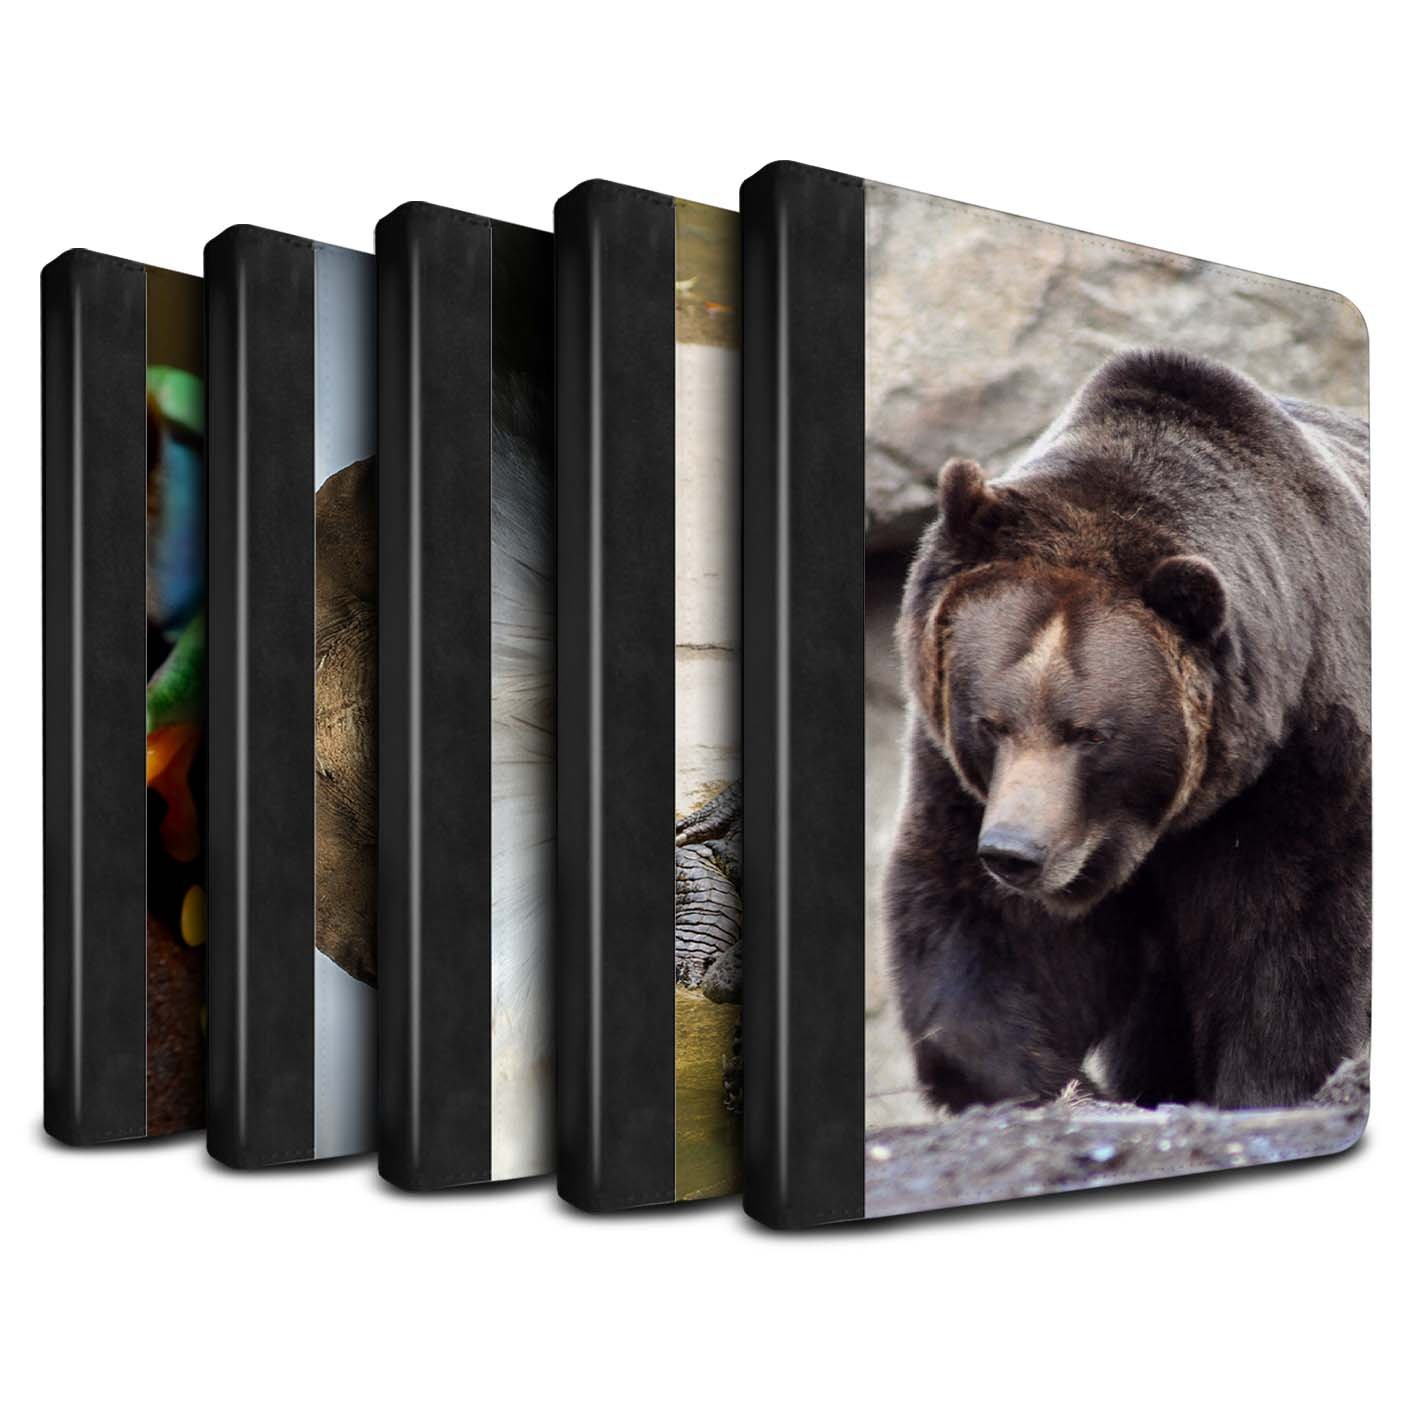 STUFF4 PU Leather Book/Cover Case for Apple iPad Pro 9.7 tablets / Multipack (20 Pck) Design / Wildlife Animals Collection